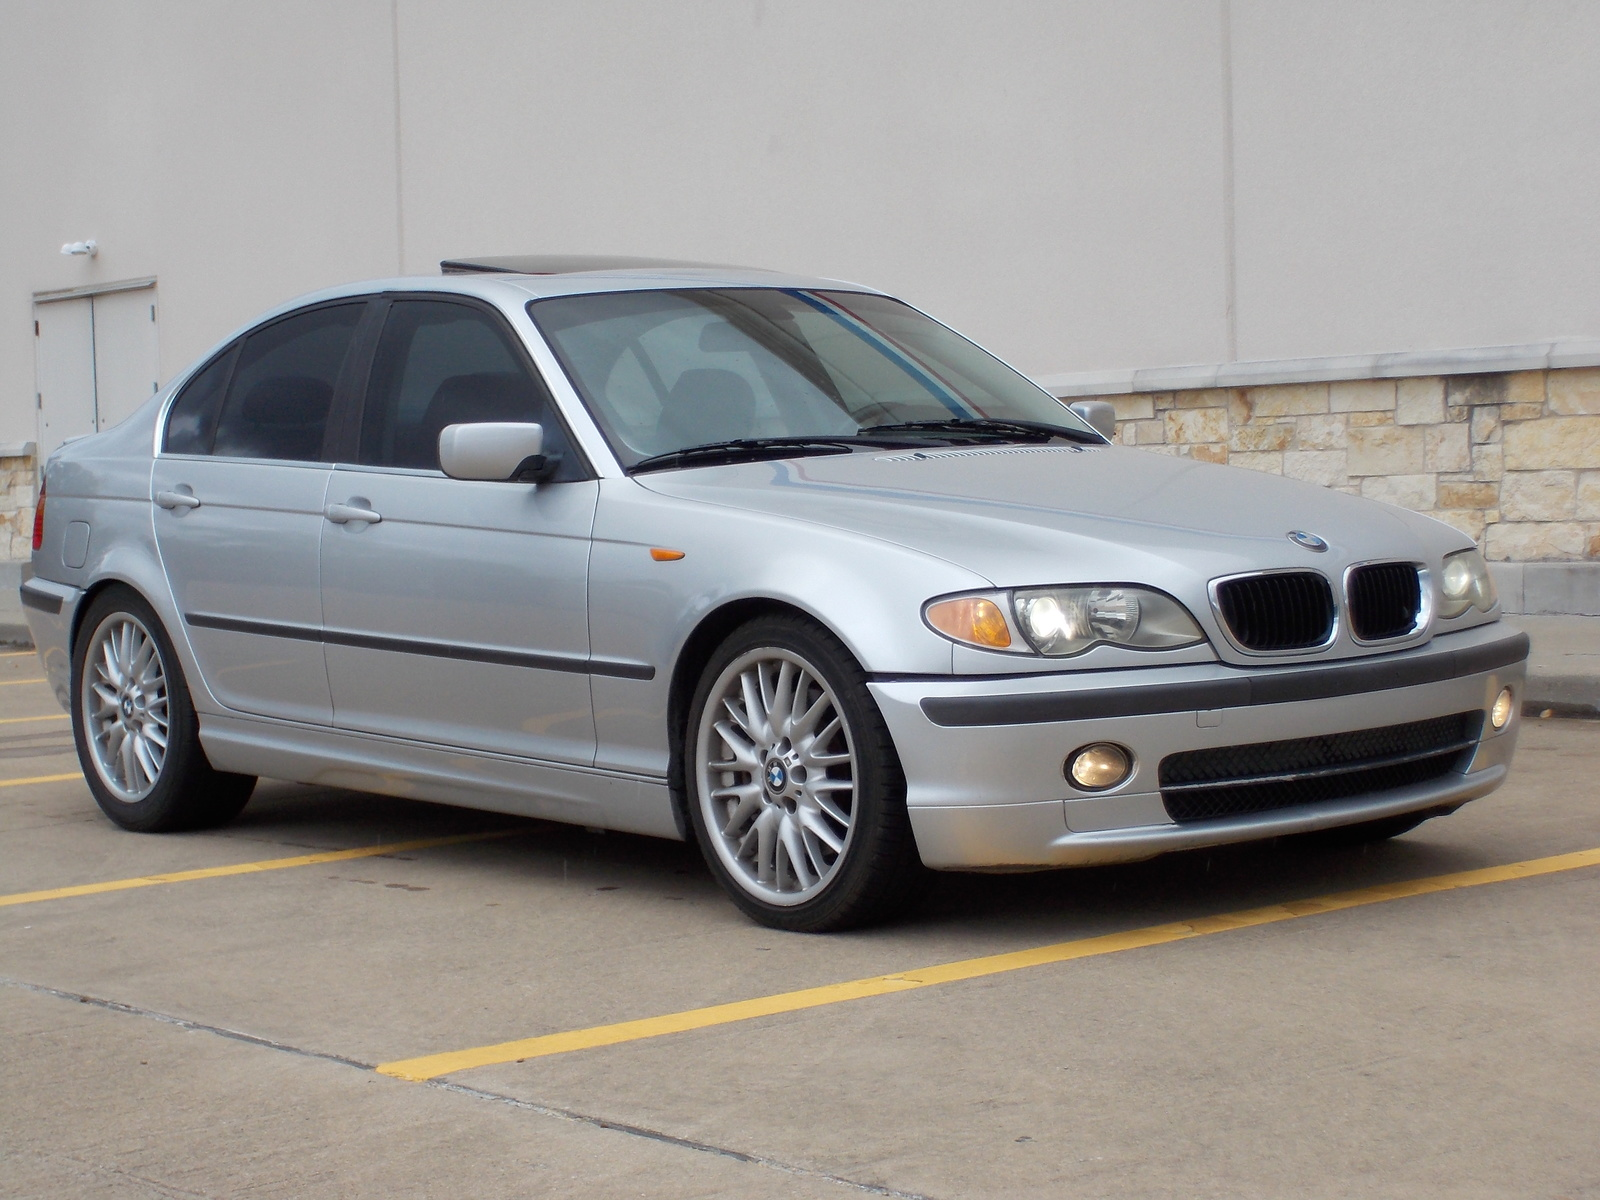 BMW 3 Series Questions - I am trying to place an ad to sell my car ...